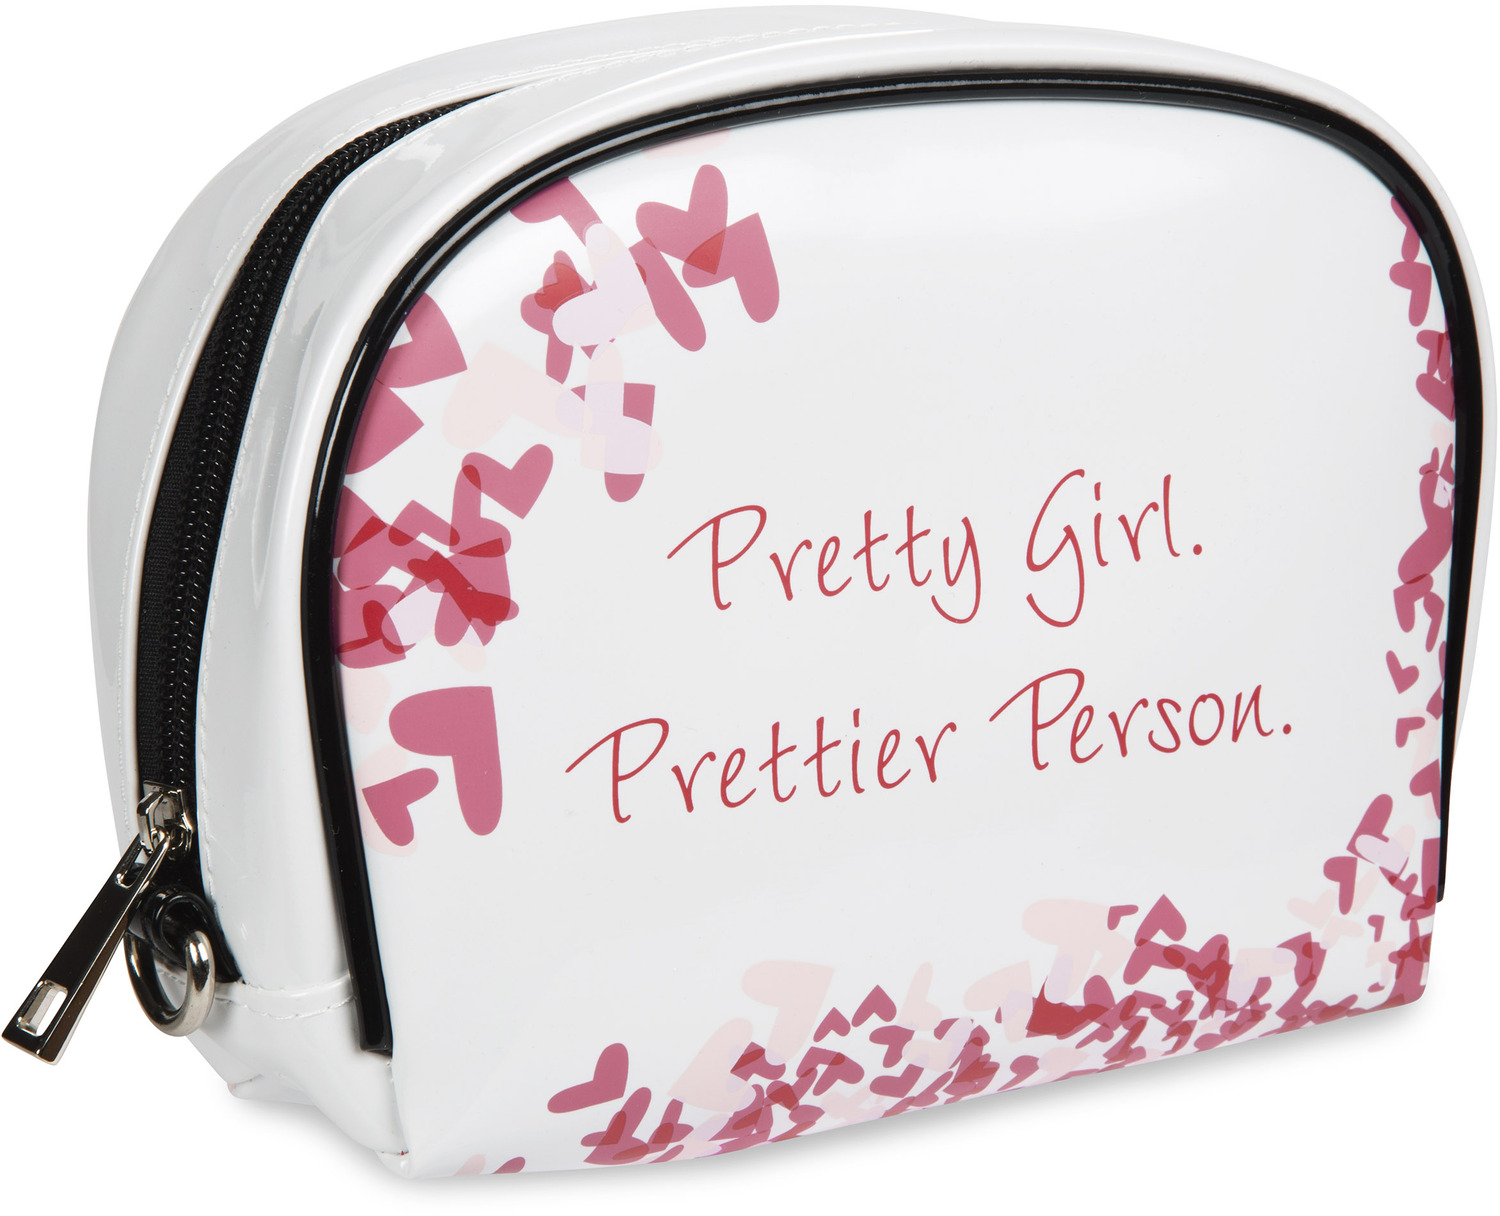 "Pretty by philoSophies - Pretty - 7.5""x 5.5"" Makeup Bag"